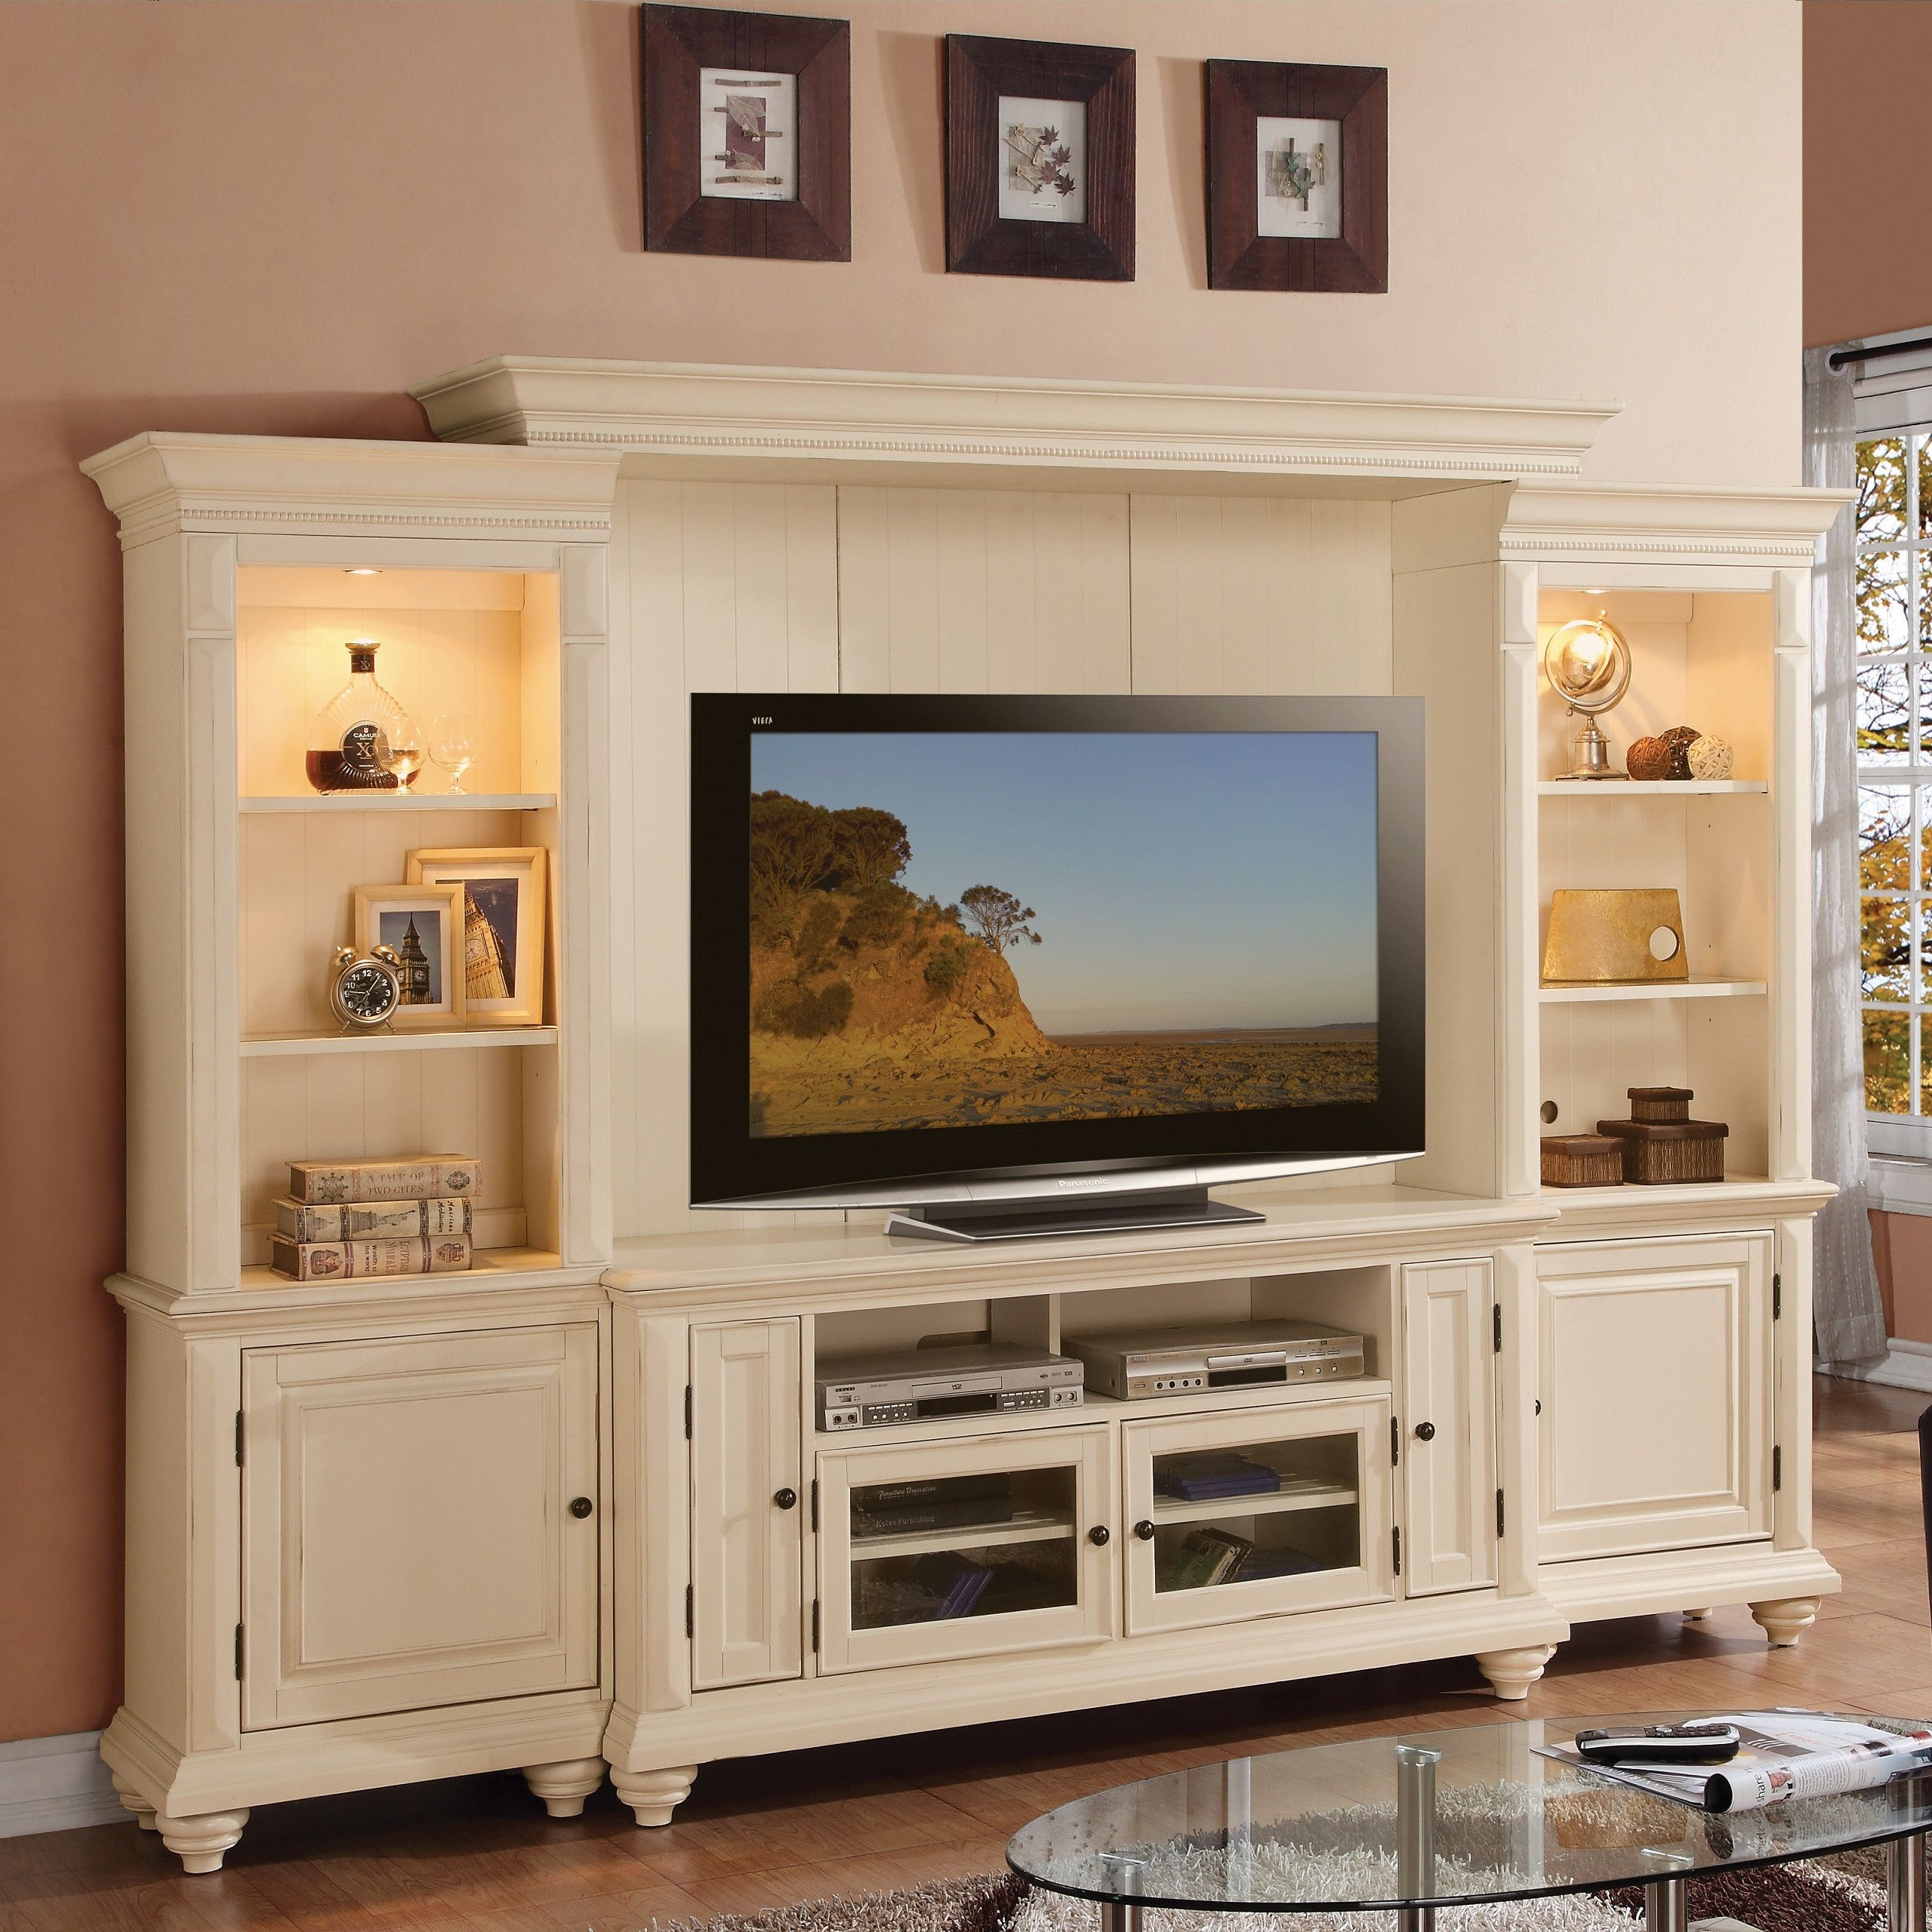 Home Entertainment Design Ideas: Home Entertainment Furniture For Home Design Ideas With